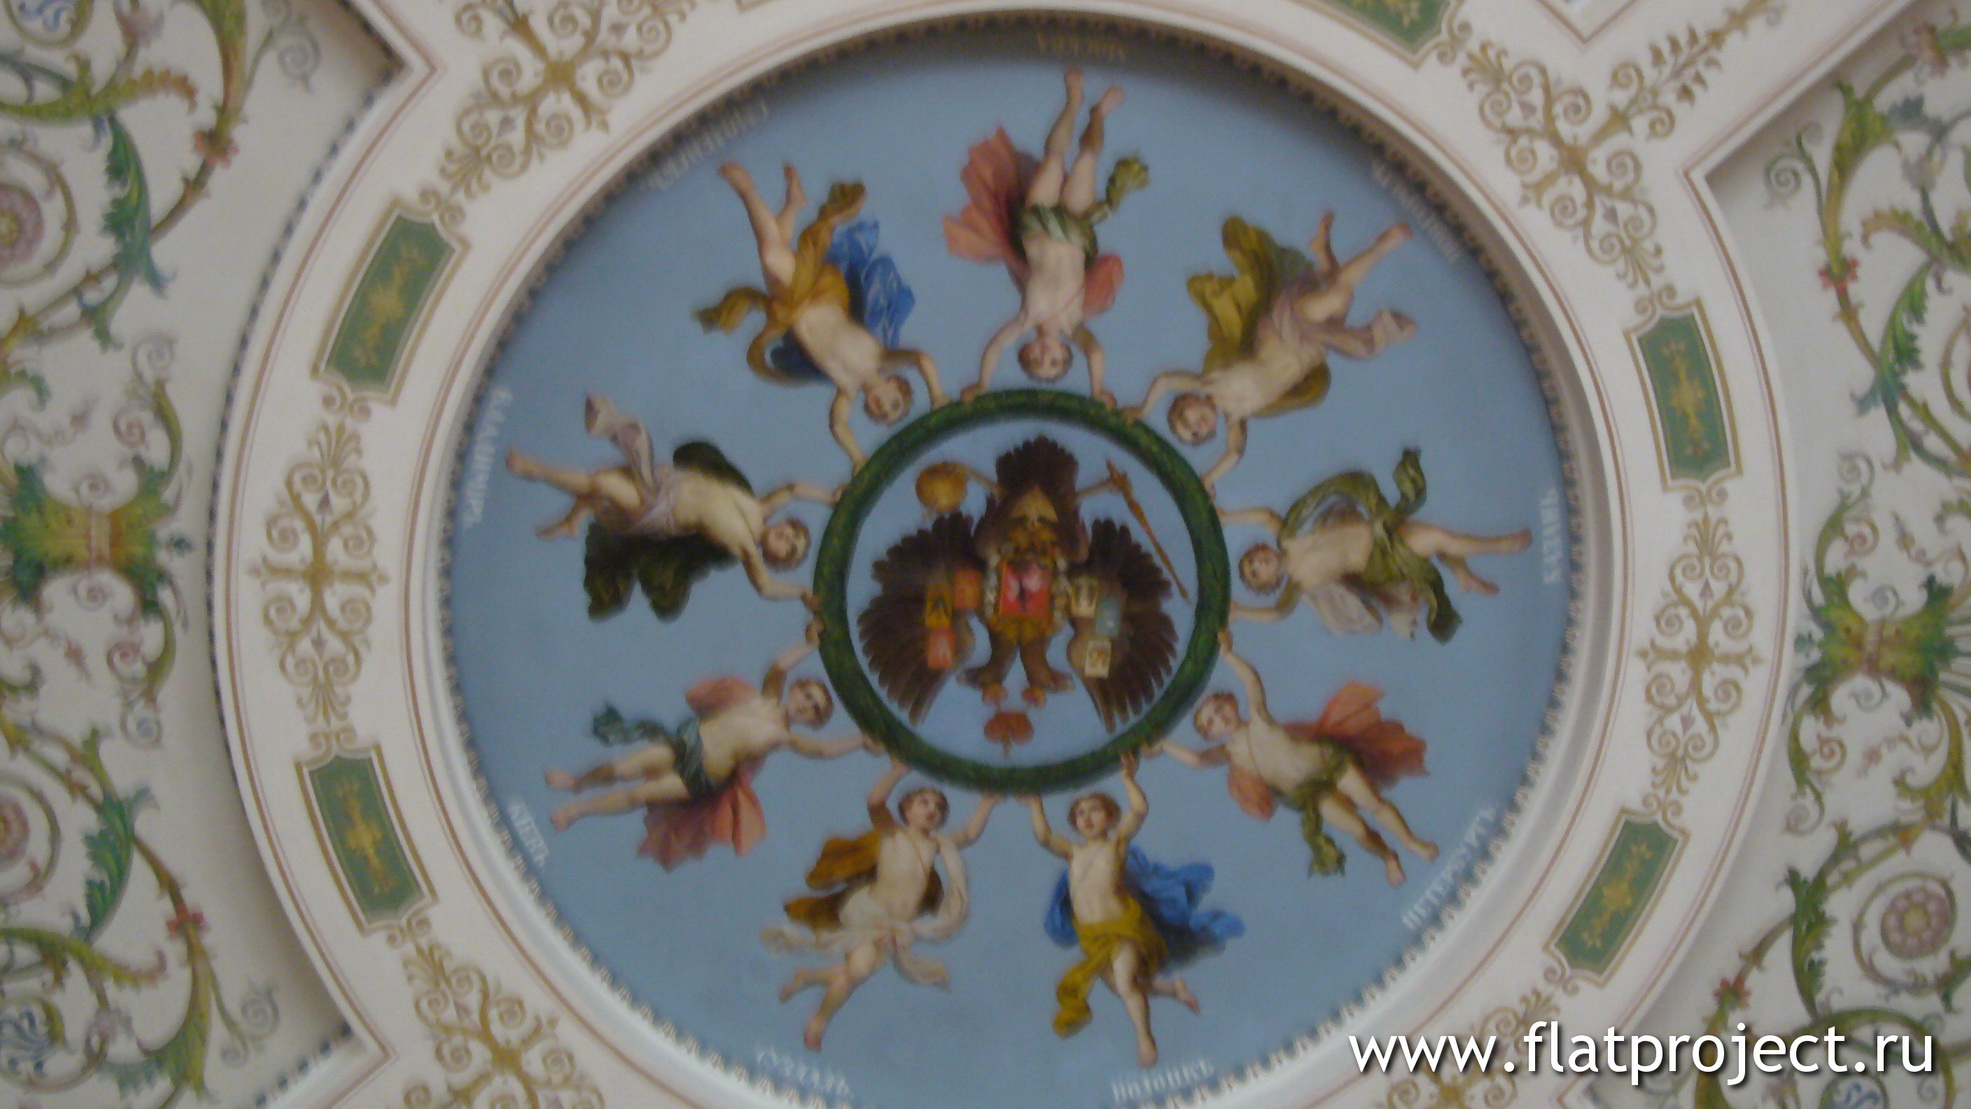 The State Hermitage museum interiors – photo 267